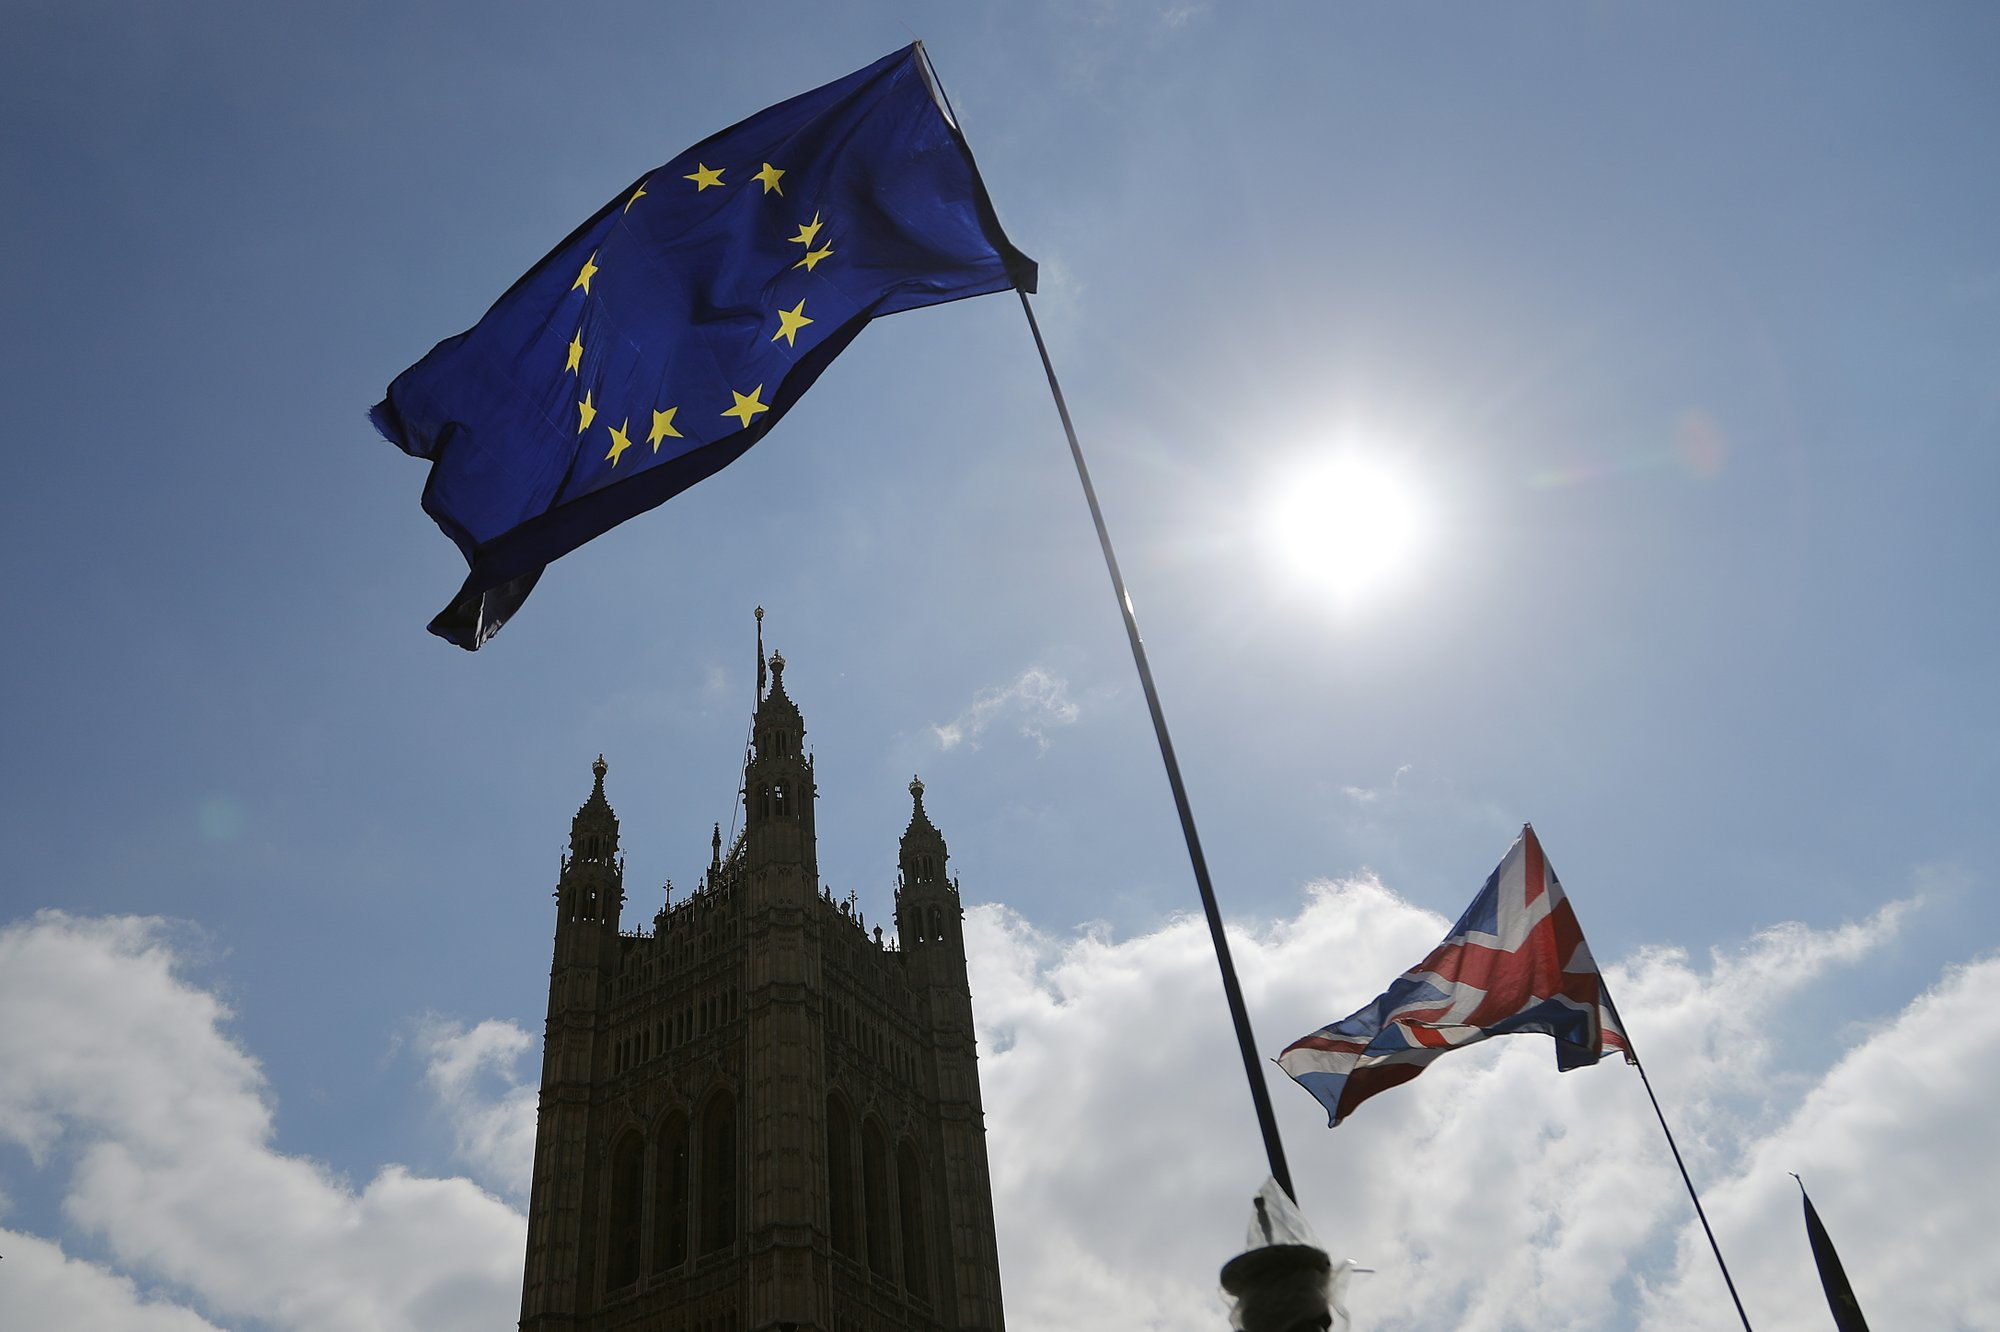 The Brexit conundrum is defeating Britain's political system